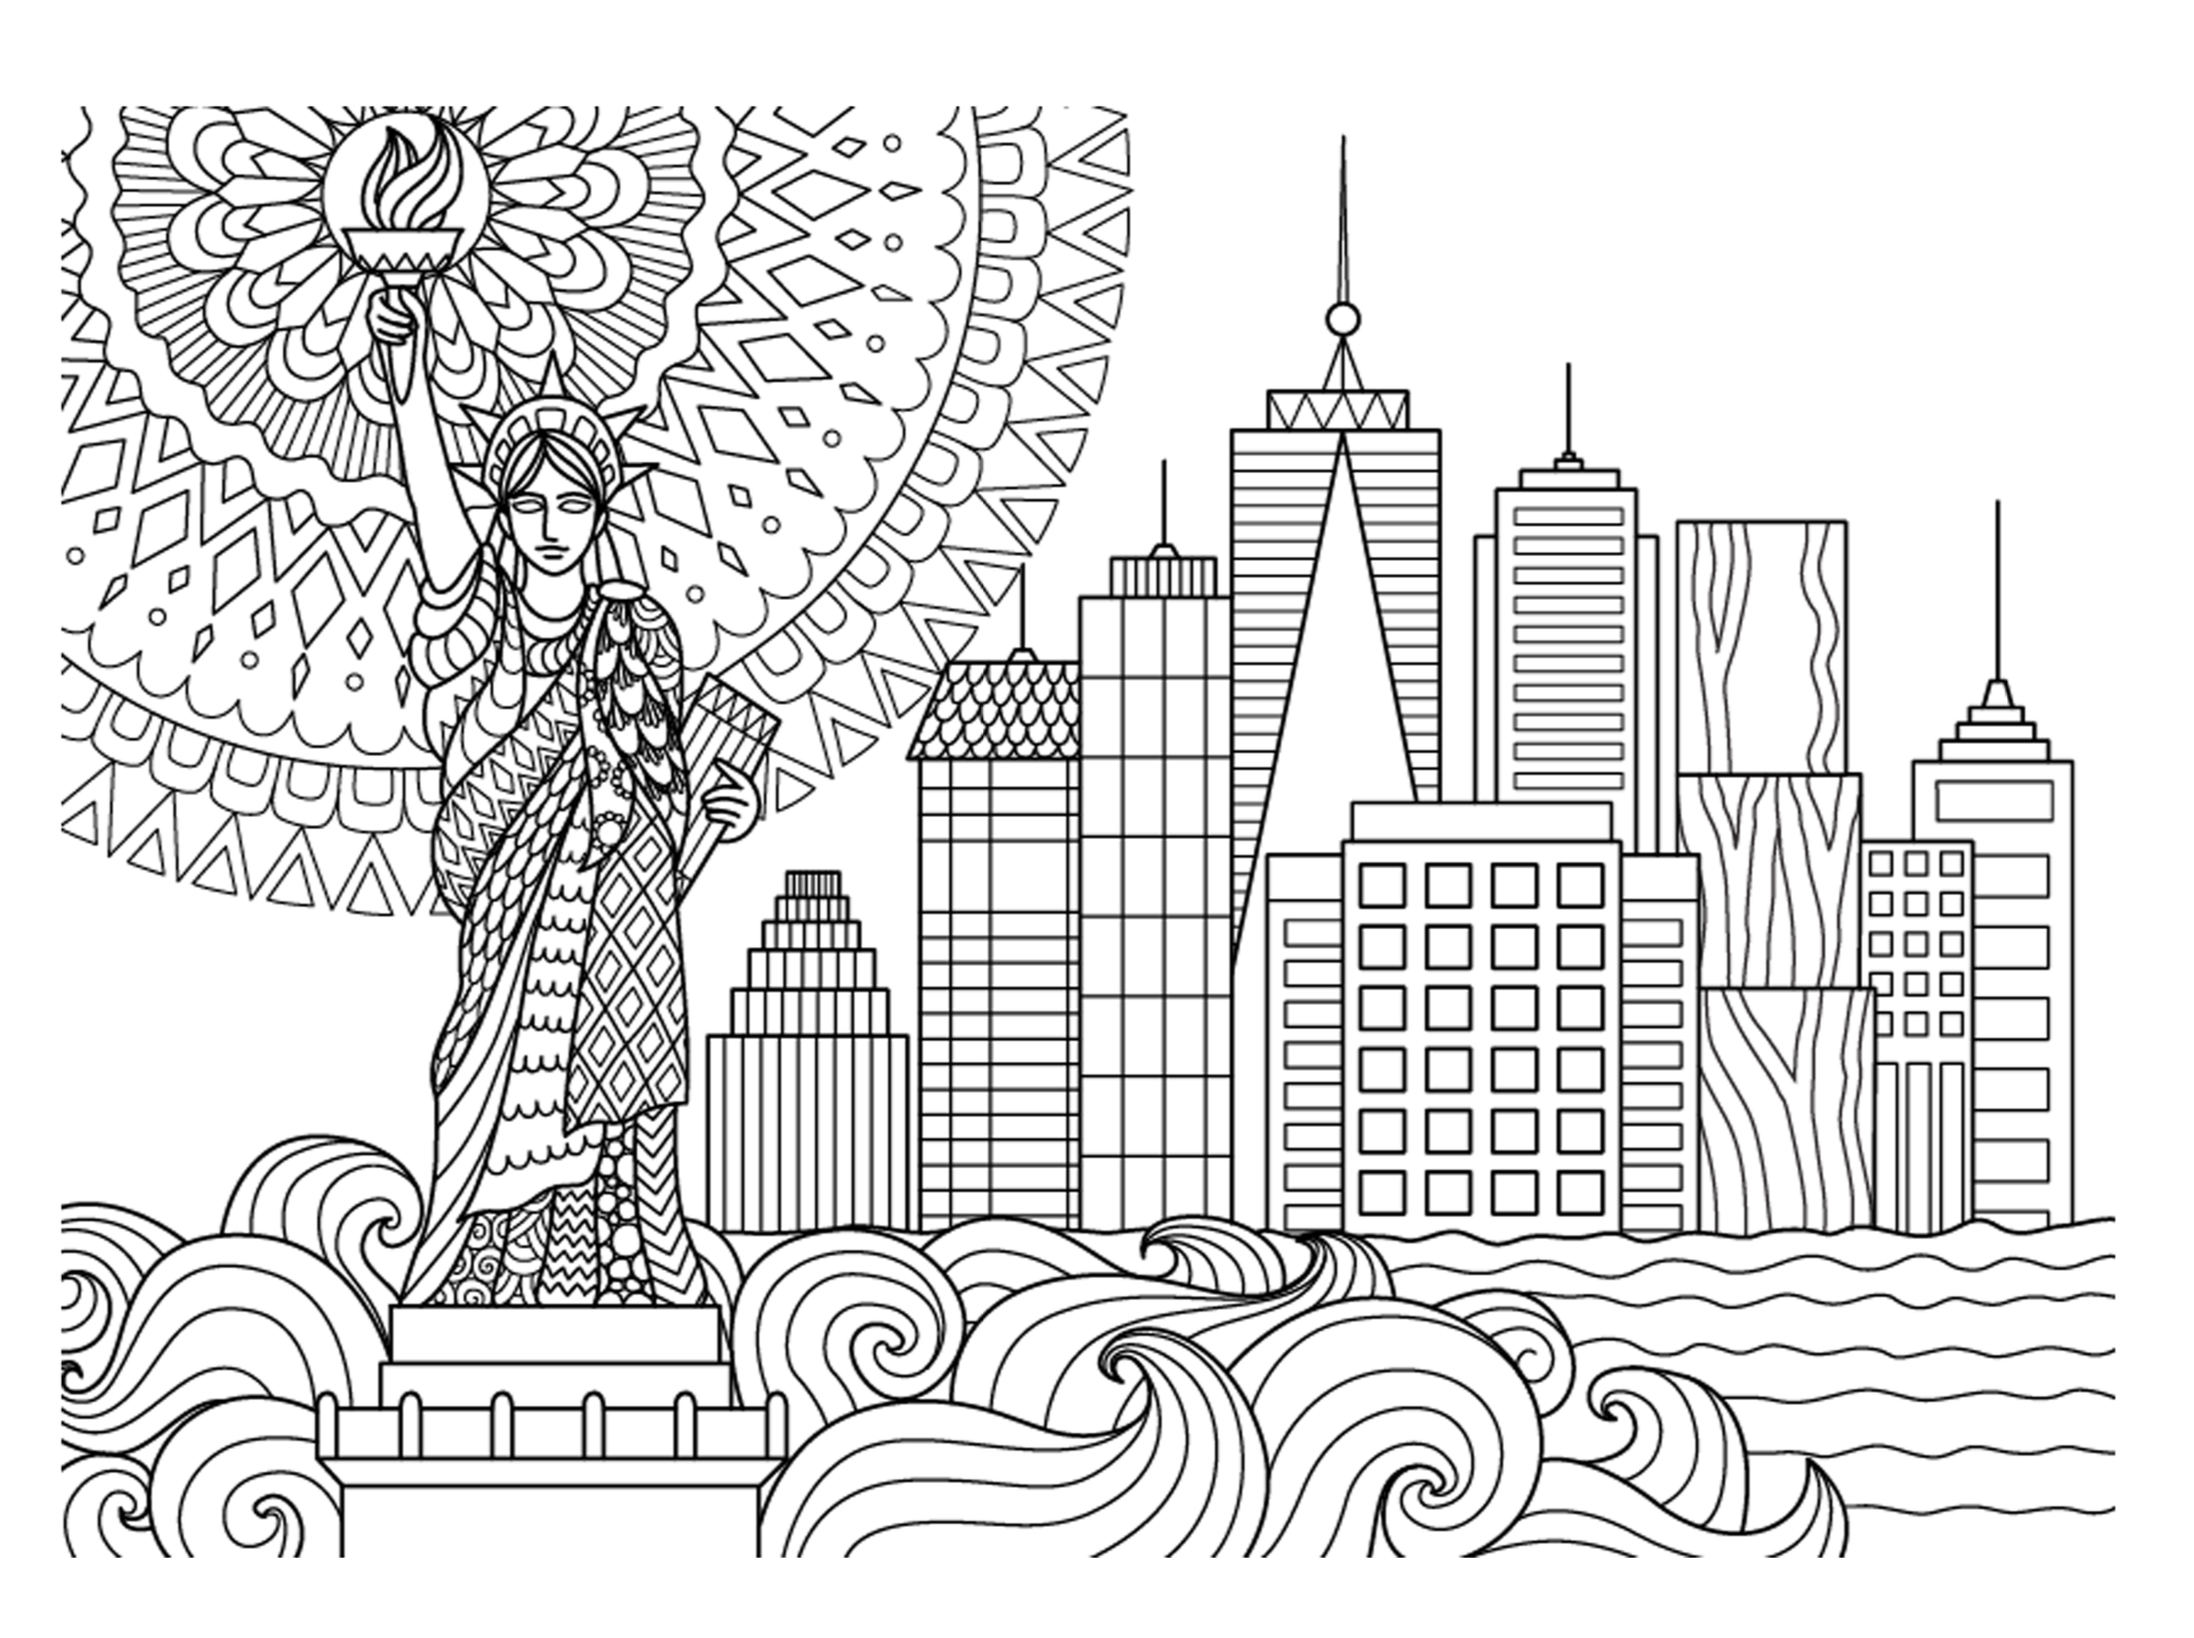 nyc coloring pages - photo#6